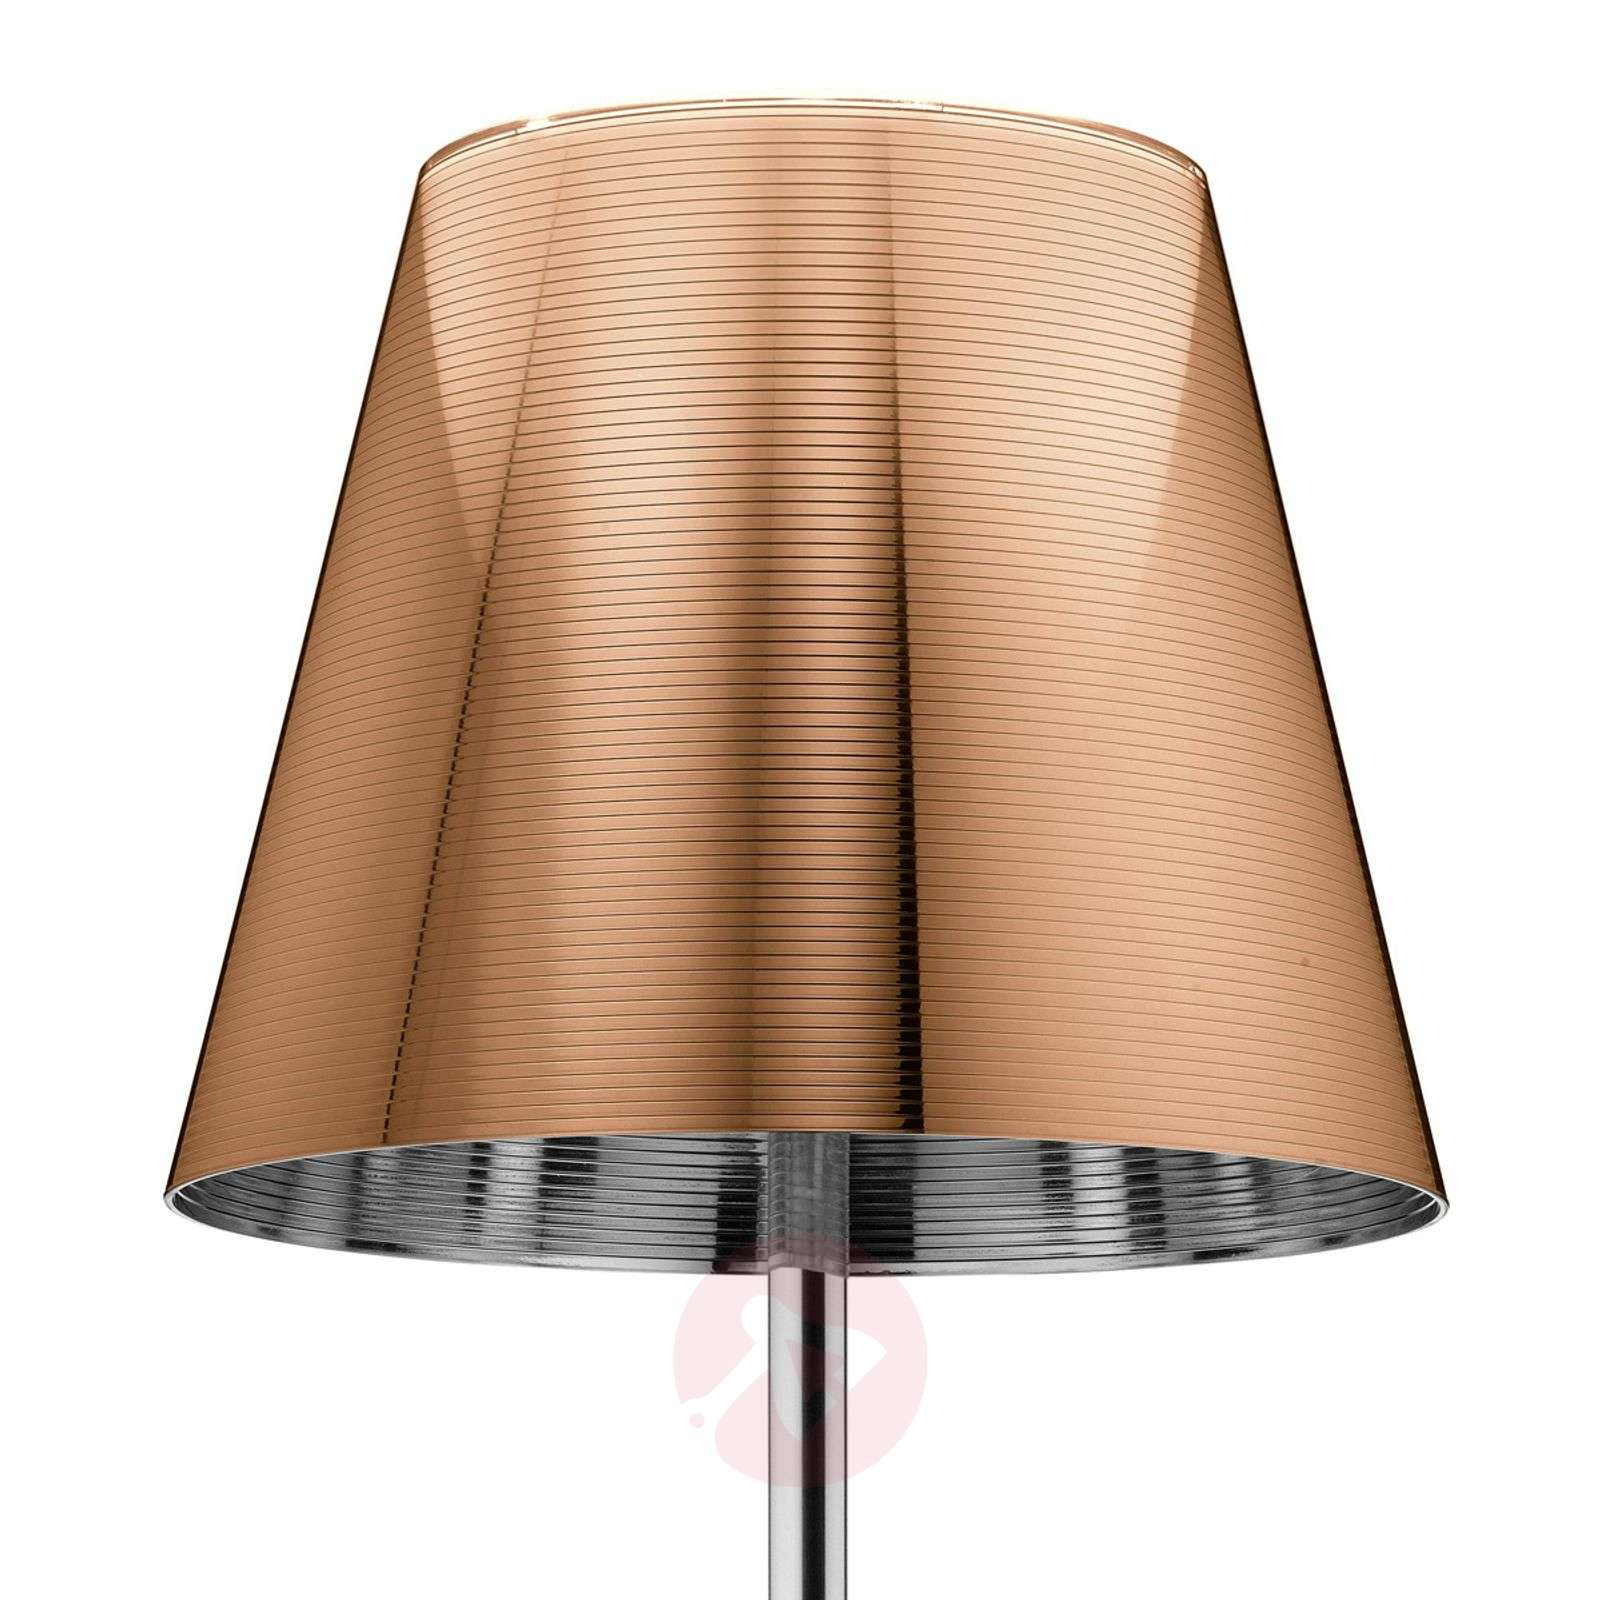 KTRIBE F3 Elegant Floor Lamp by FLOS-3510137X-01